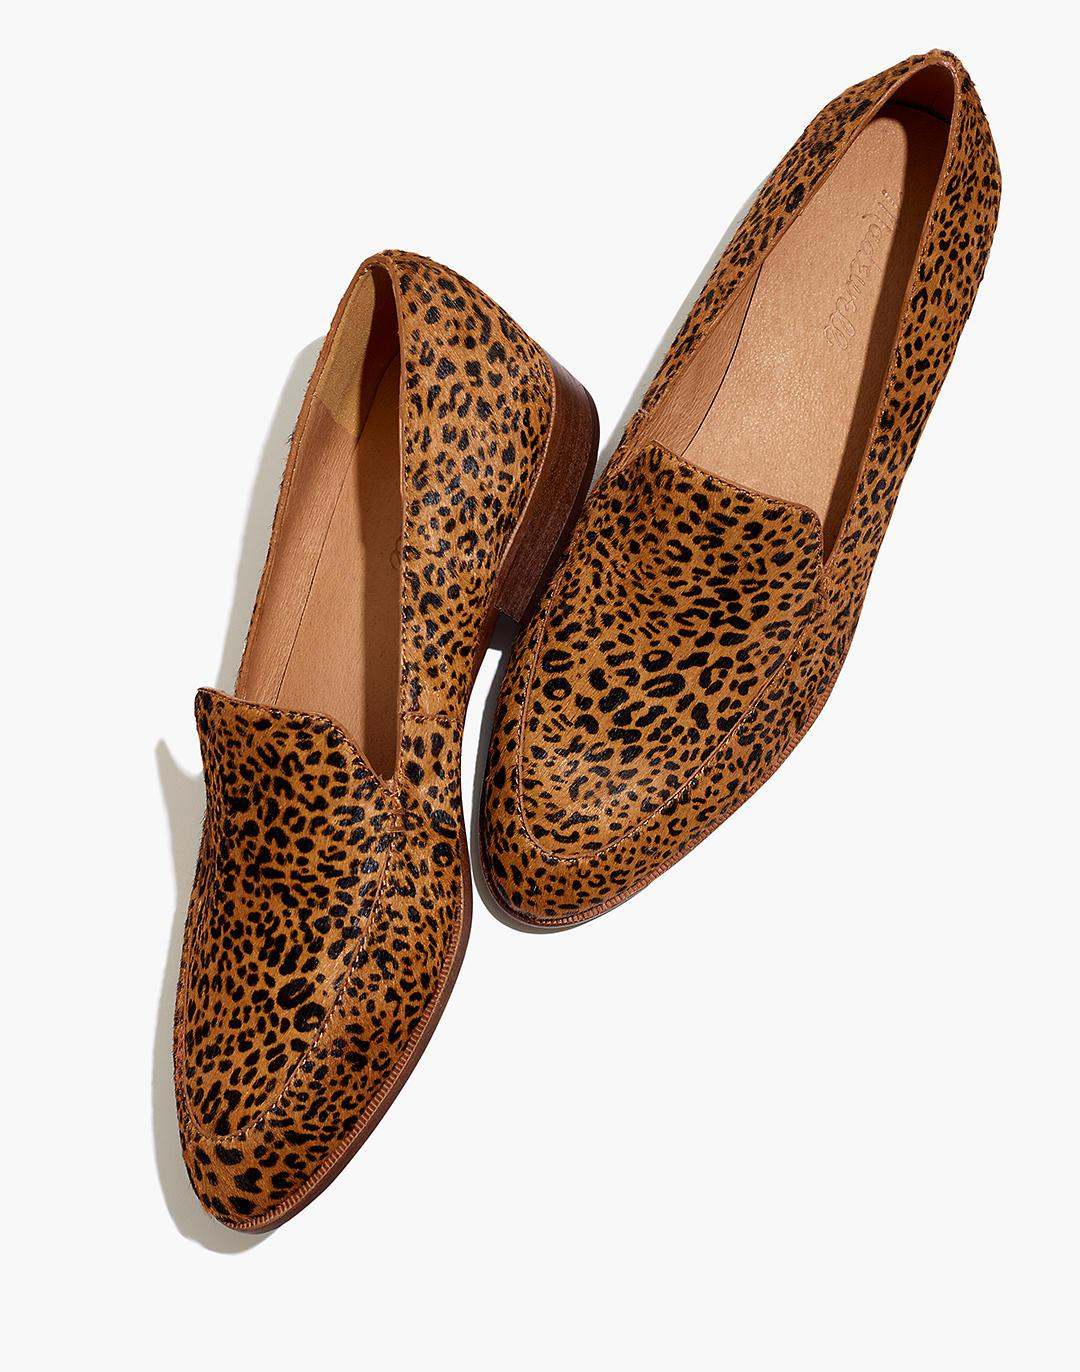 The Frances Loafer in Mini Leopard Calf Hair